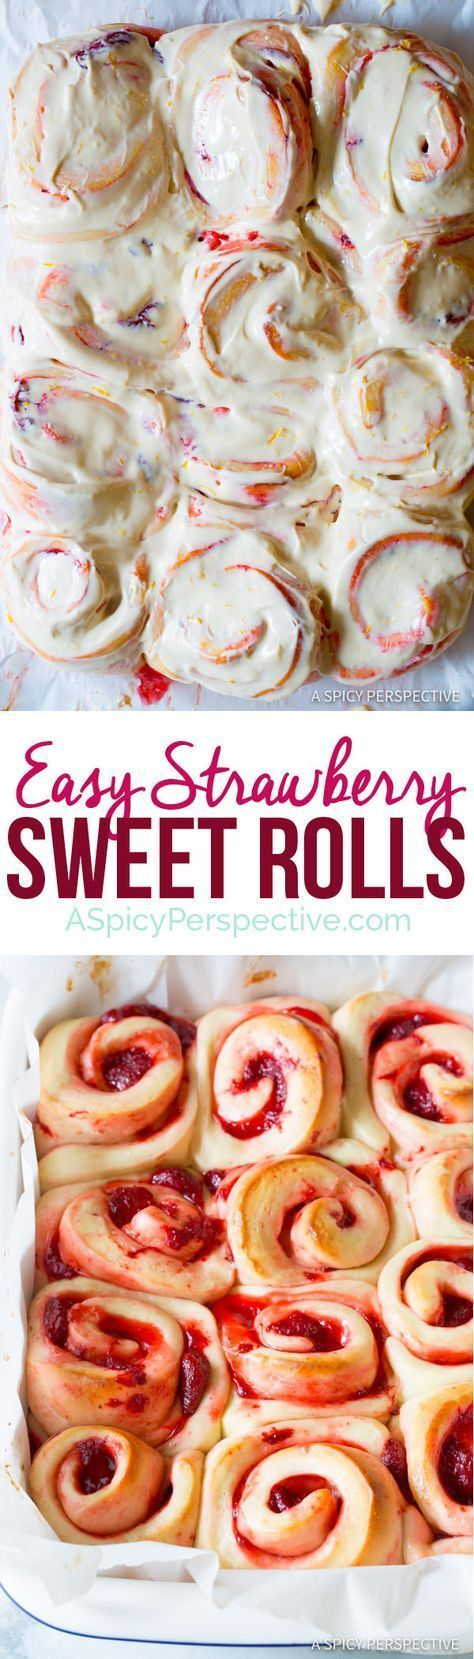 The Best Strawberry Sweet Rolls Recipe | ASpicyPerspective...